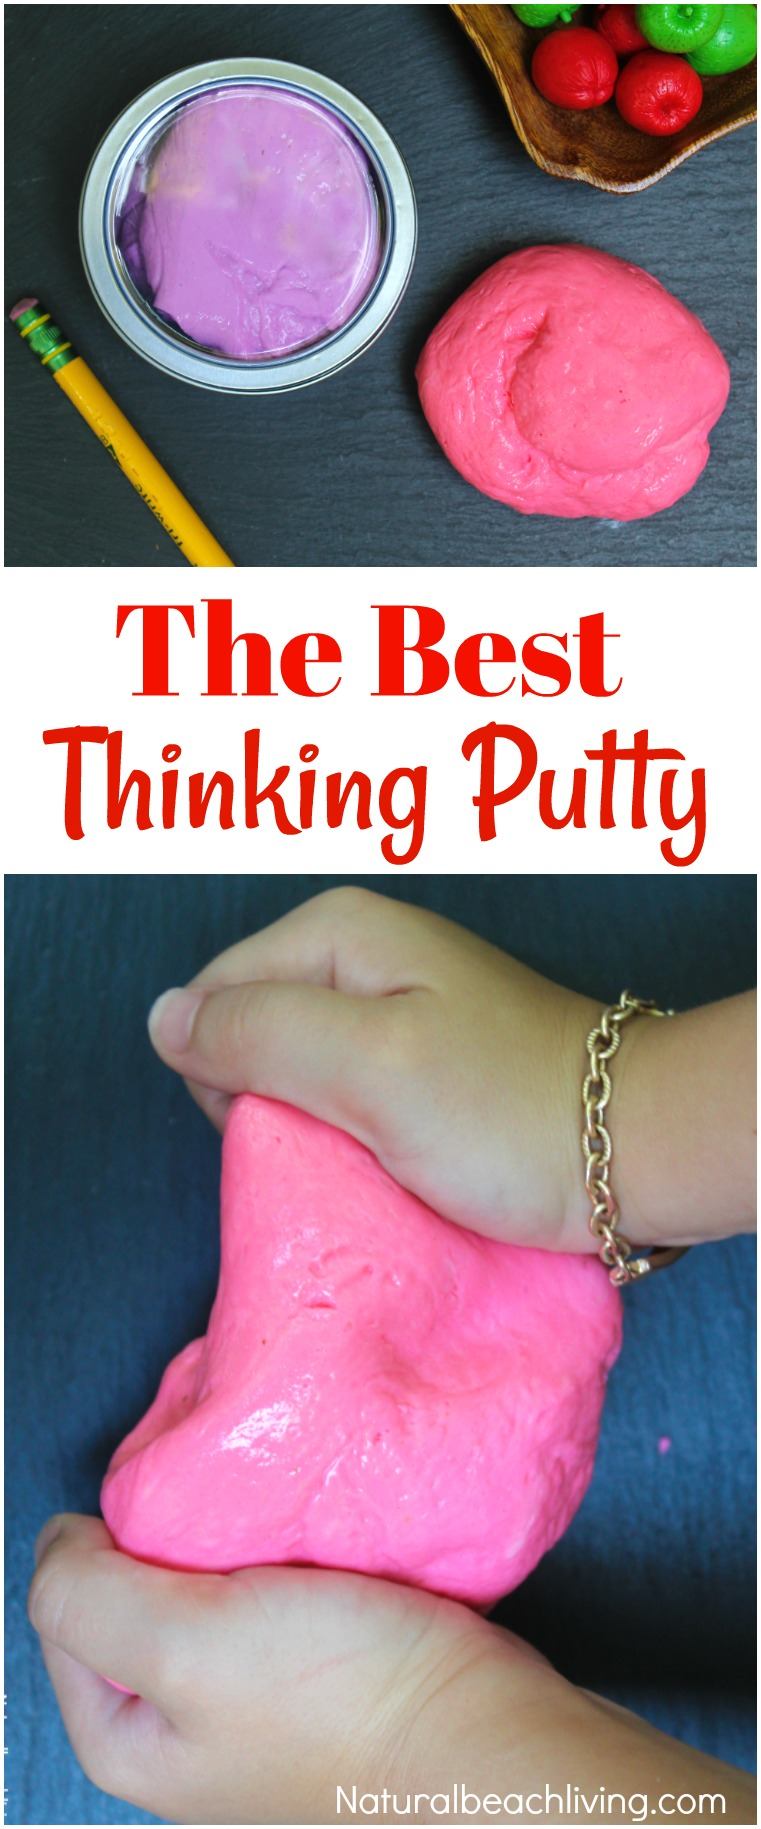 The Best Thinking Putty Recipe You'll Ever Make, Thinking Putty, DIY Thinking Putty, Silly Putty Recipe, Homemade Stress Putty, Therapy Dough, Sensory Play